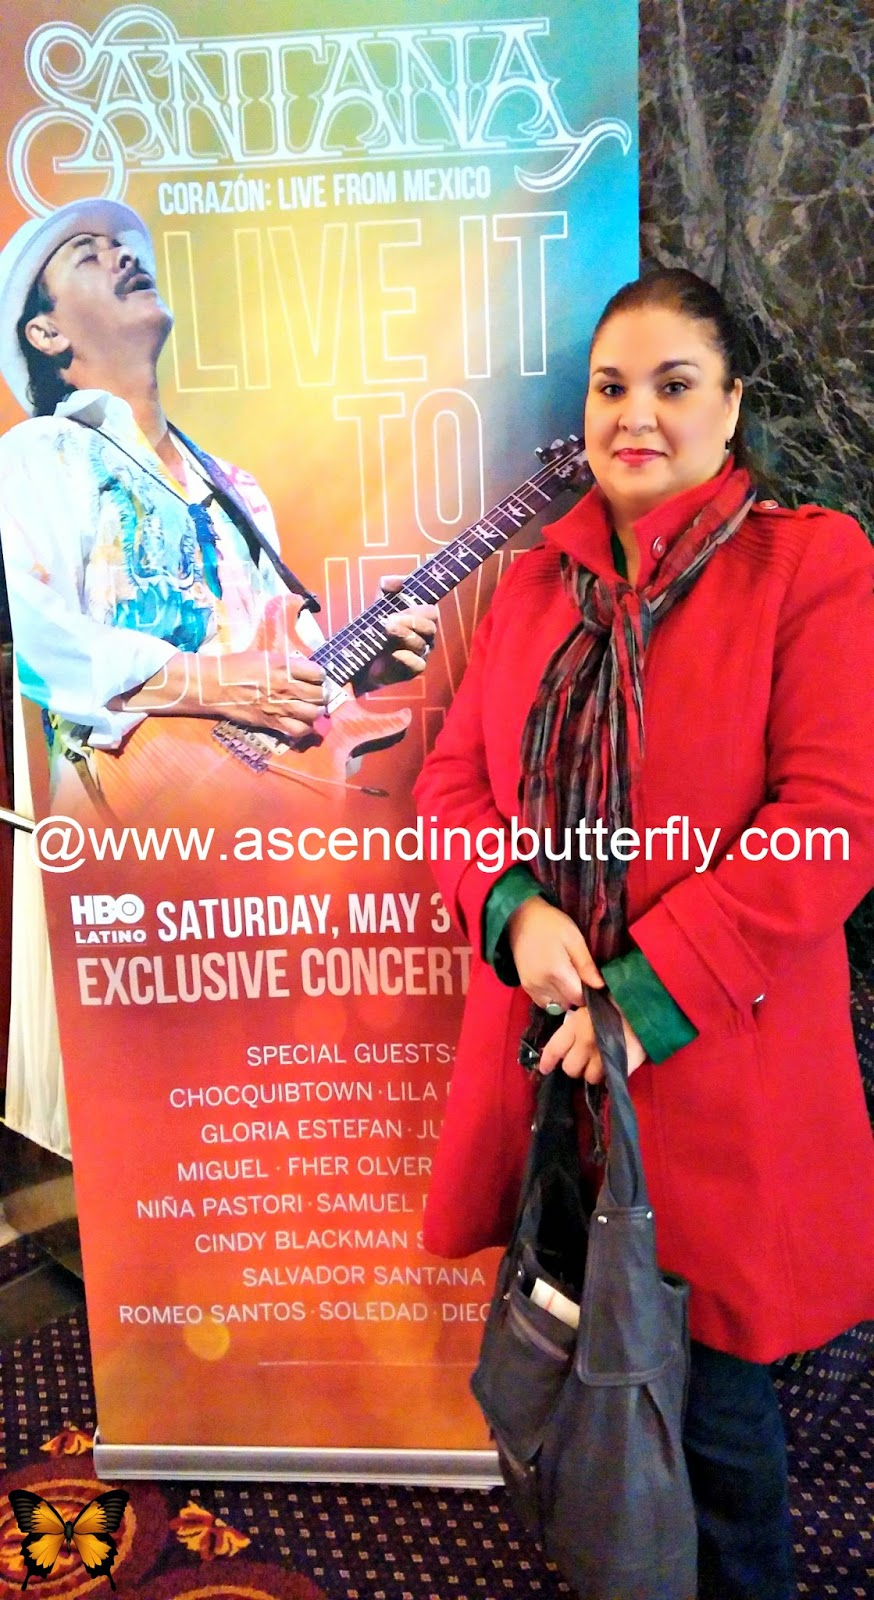 HBO Latino Santana-Corazón: Live from Mexico: Live It to Believe It Premiere Event.